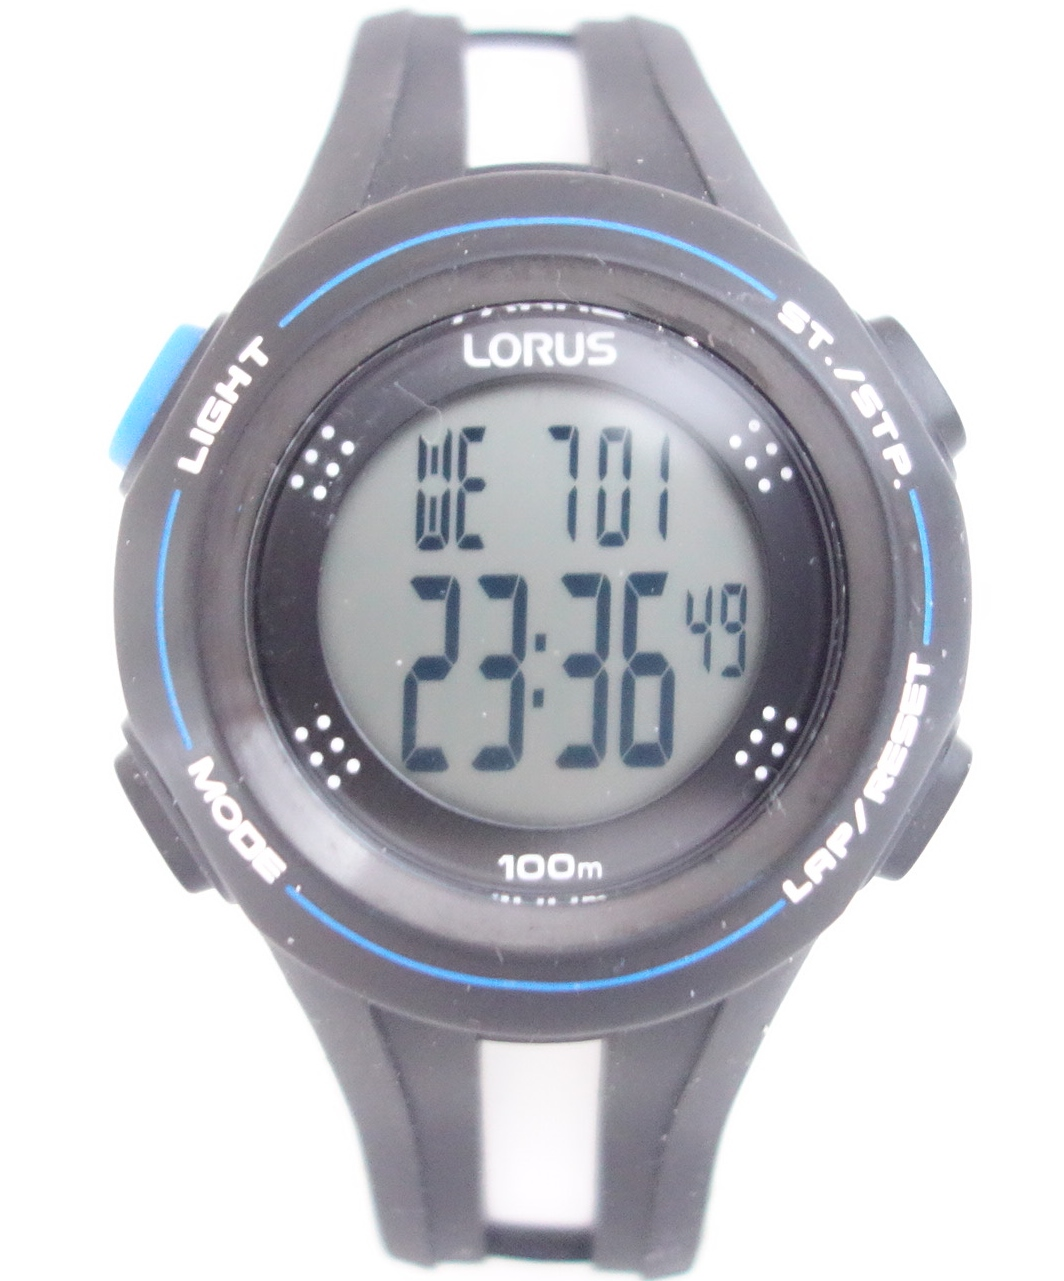 force sale am digital watches htm g watch adxmall end sports i